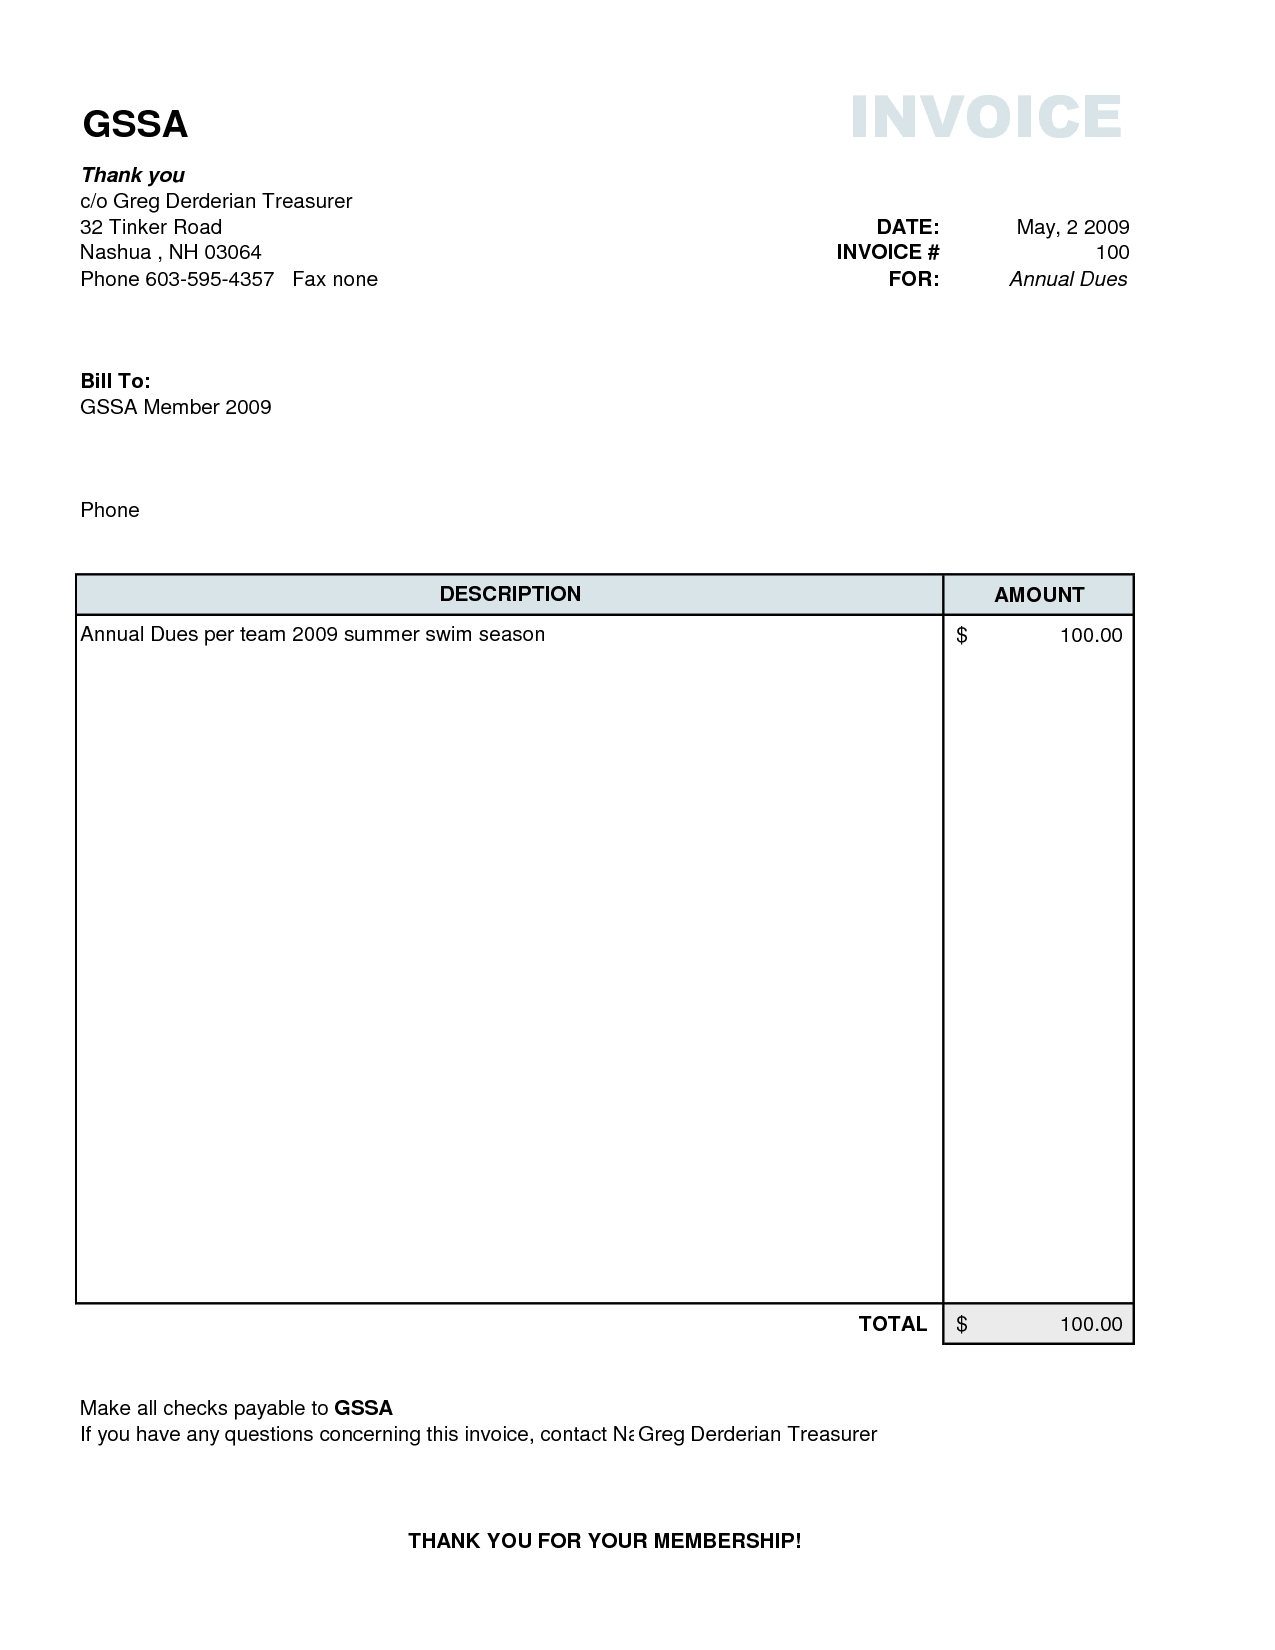 How To Create An Invoice Template In Word word cover page template – How to Create an Invoice Template in Word